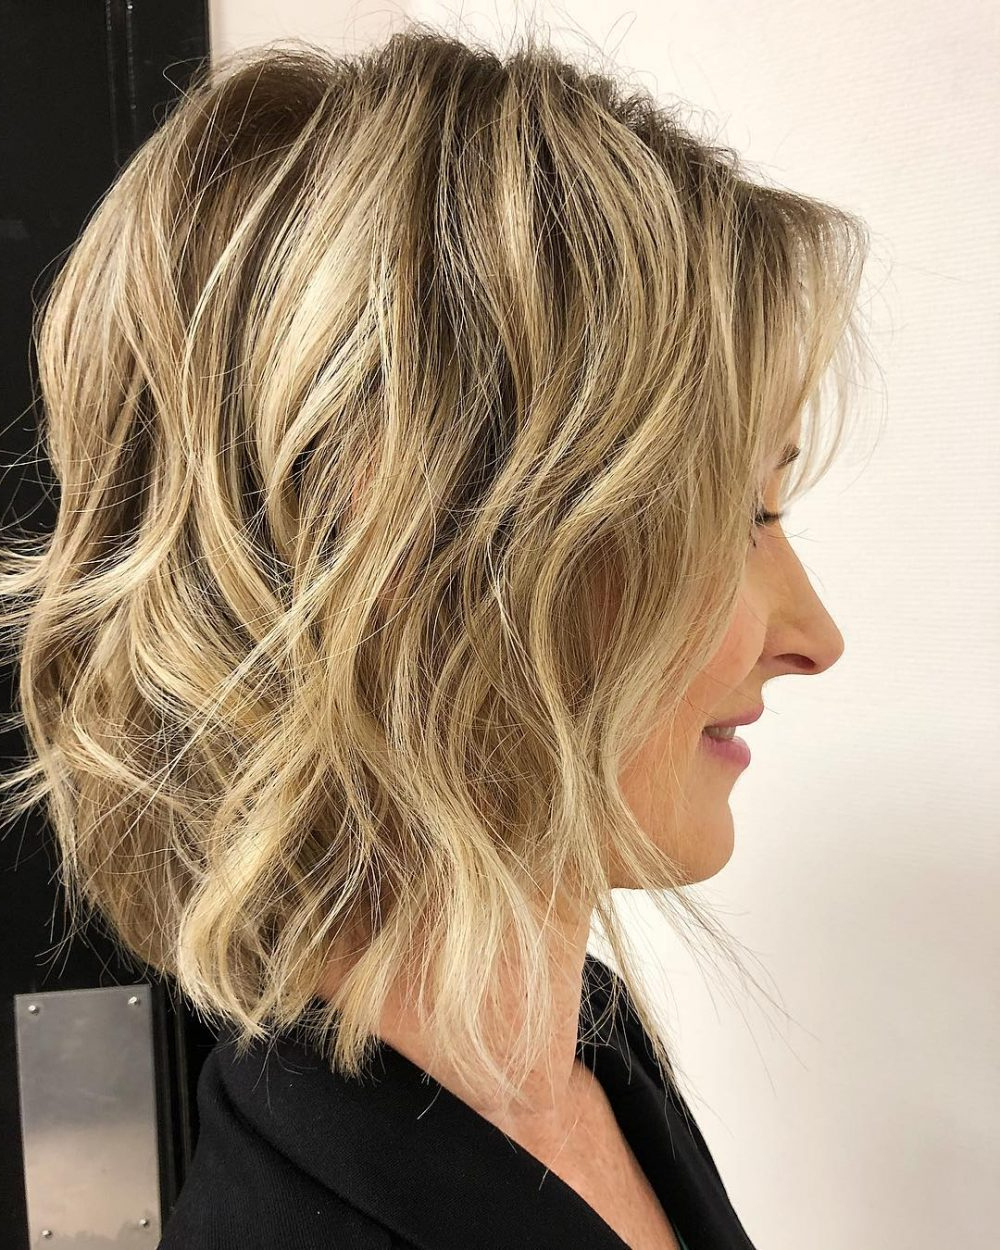 43 Perfect Short Hairstyles For Fine Hair In 2018 Inside Shaggy Layers Hairstyles For Thin Hair (View 7 of 20)